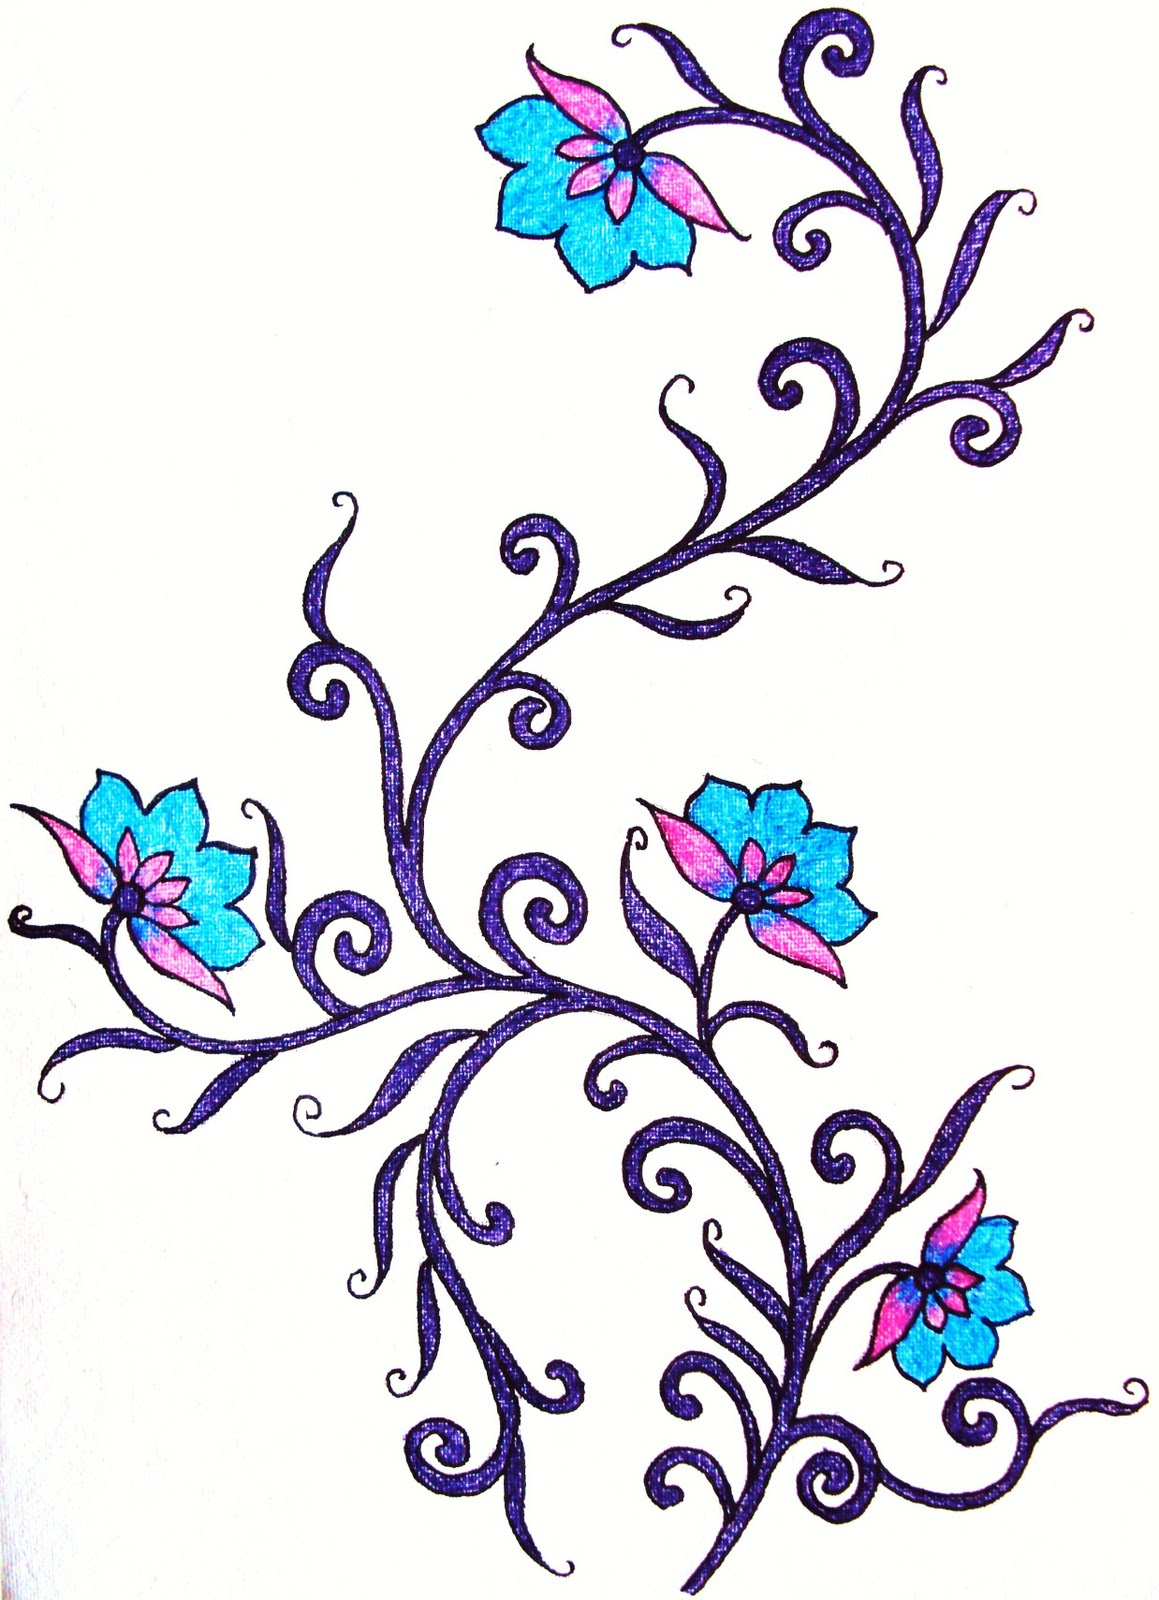 Flower Embroidery Designs Patterns